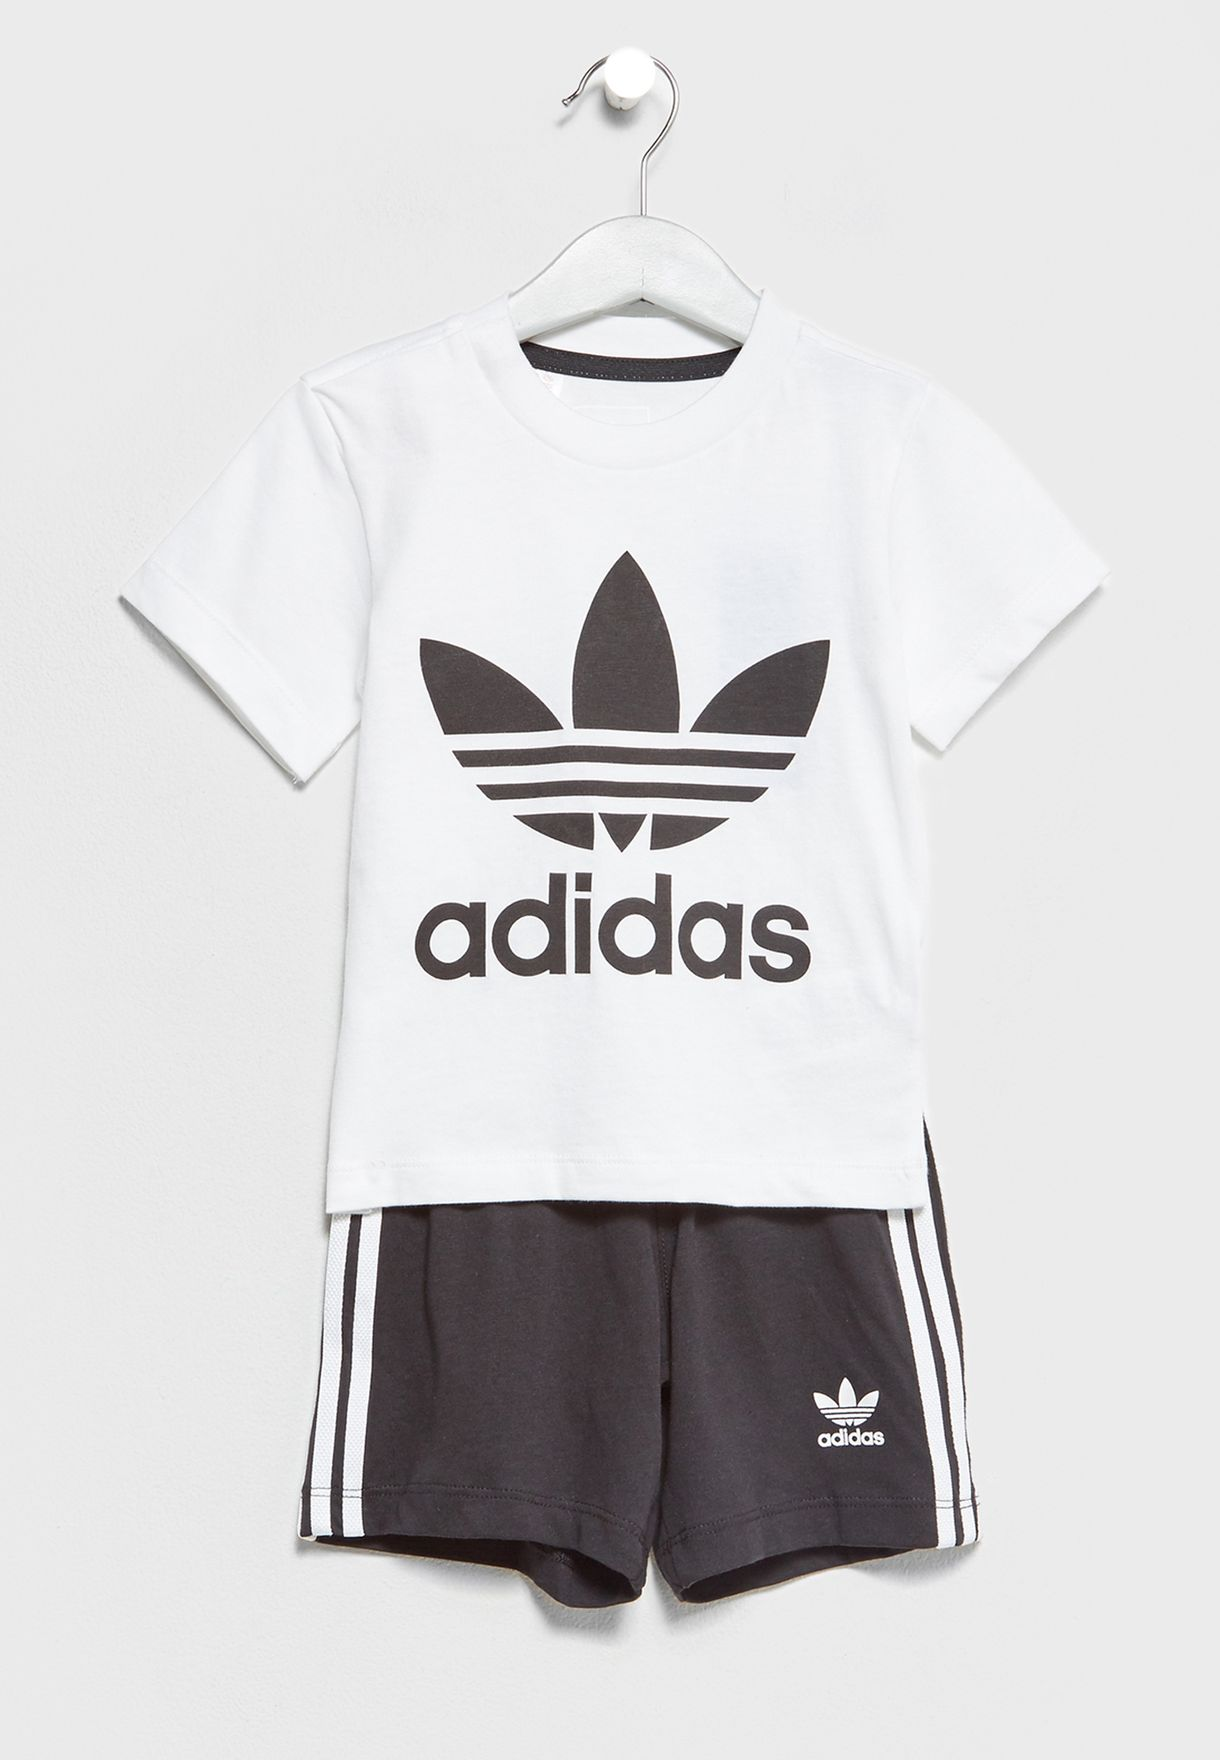 309a111d650 Shop adidas Originals monochrome Infant Trefoil T-Shirt+Shorts Set ...